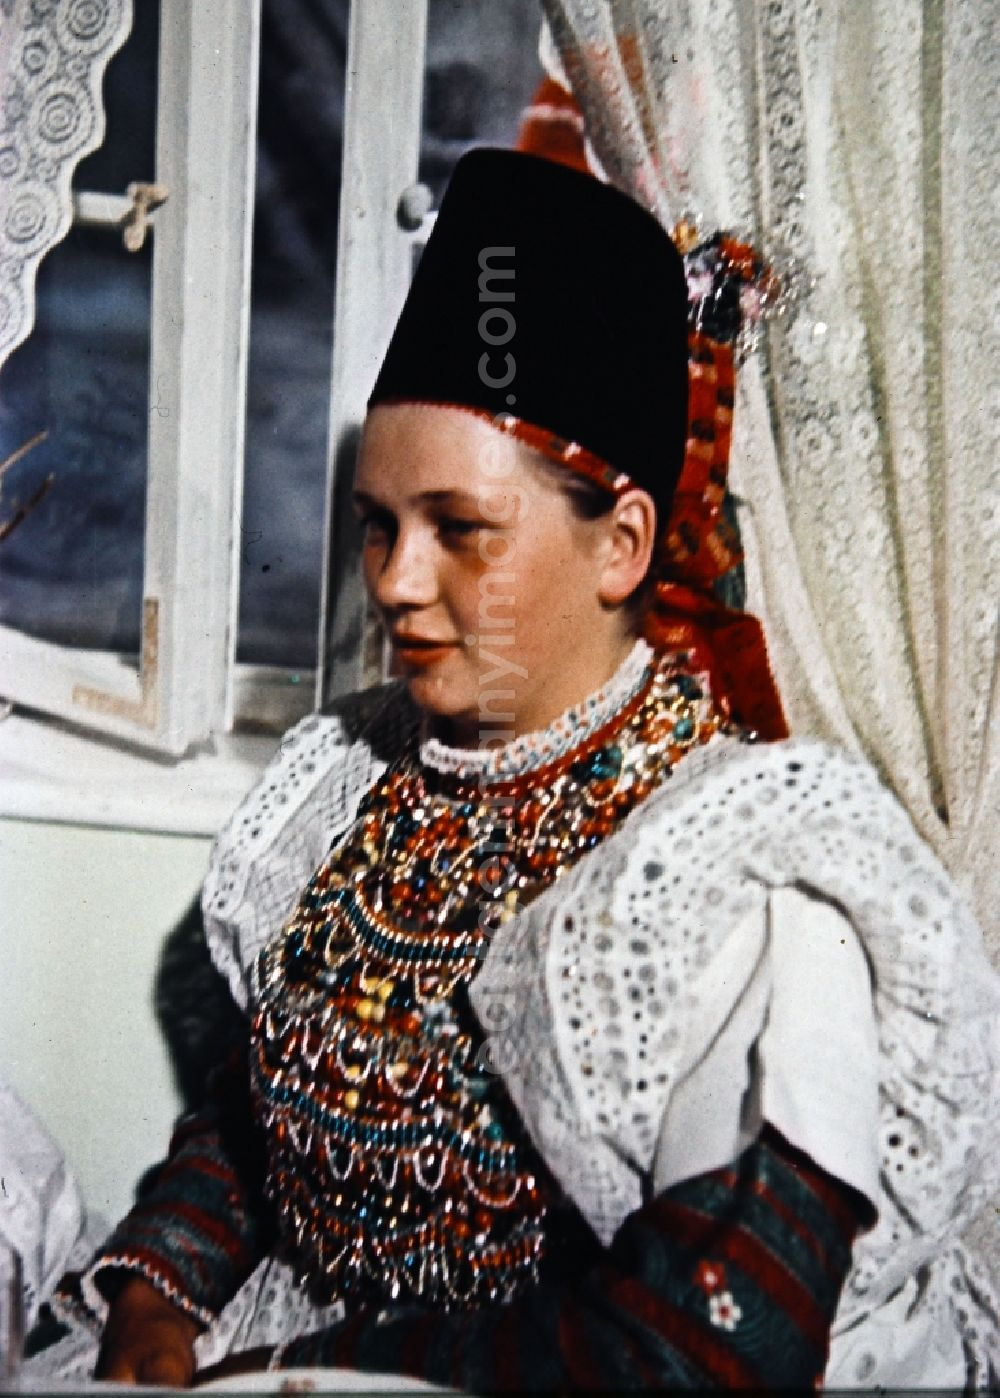 Radibor: Costumes and garments the Sorbian minority in Milkel in the state Saxony on the territory of the former GDR, German Democratic Republic